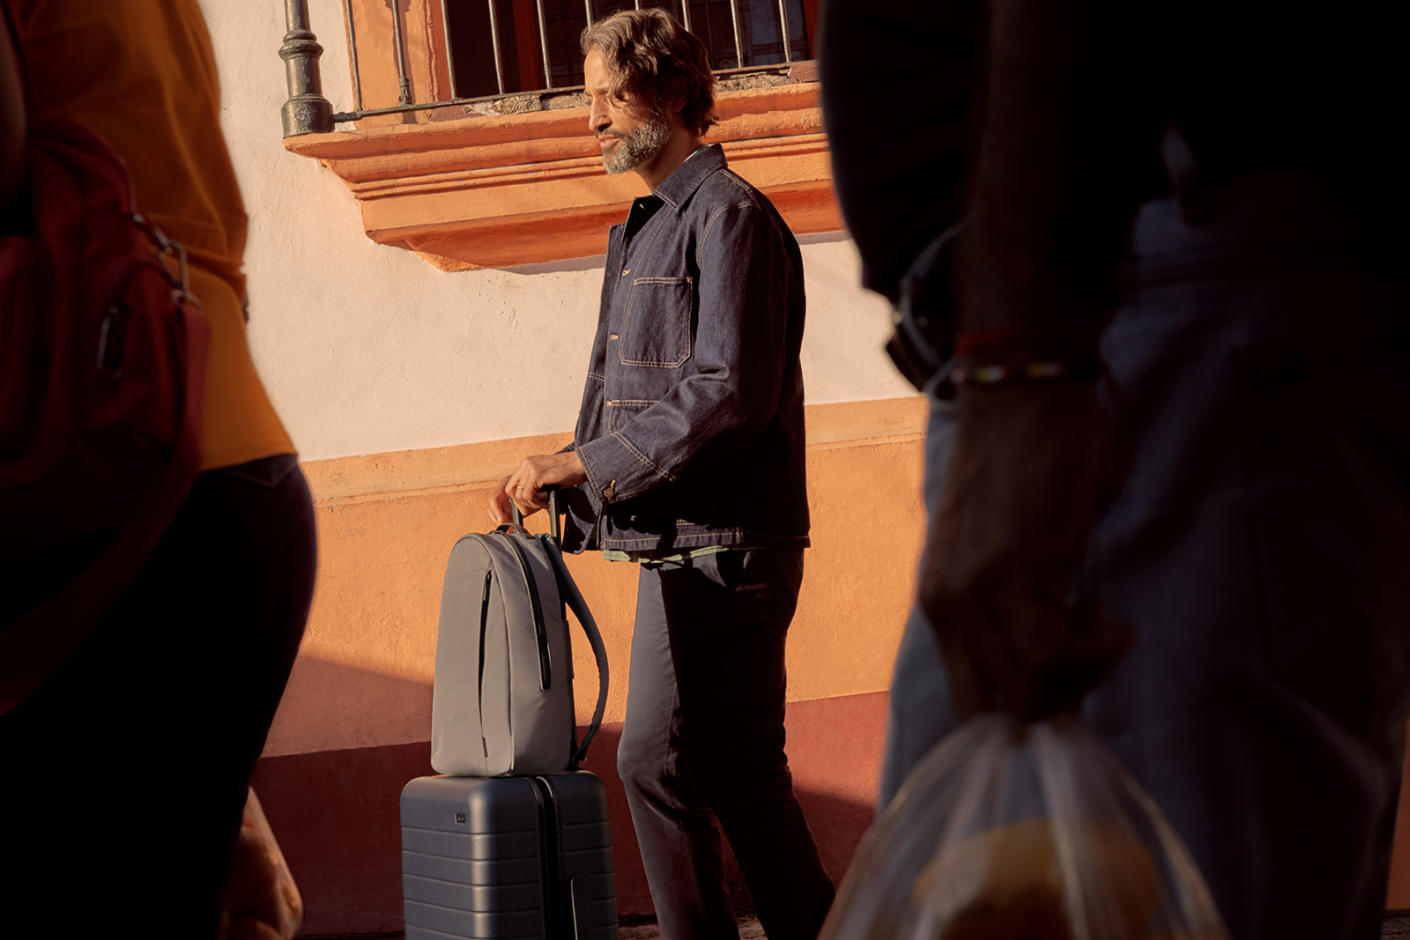 A man in a denim jacket rolling his carry-on suitcase and backpack on a cobbled street.